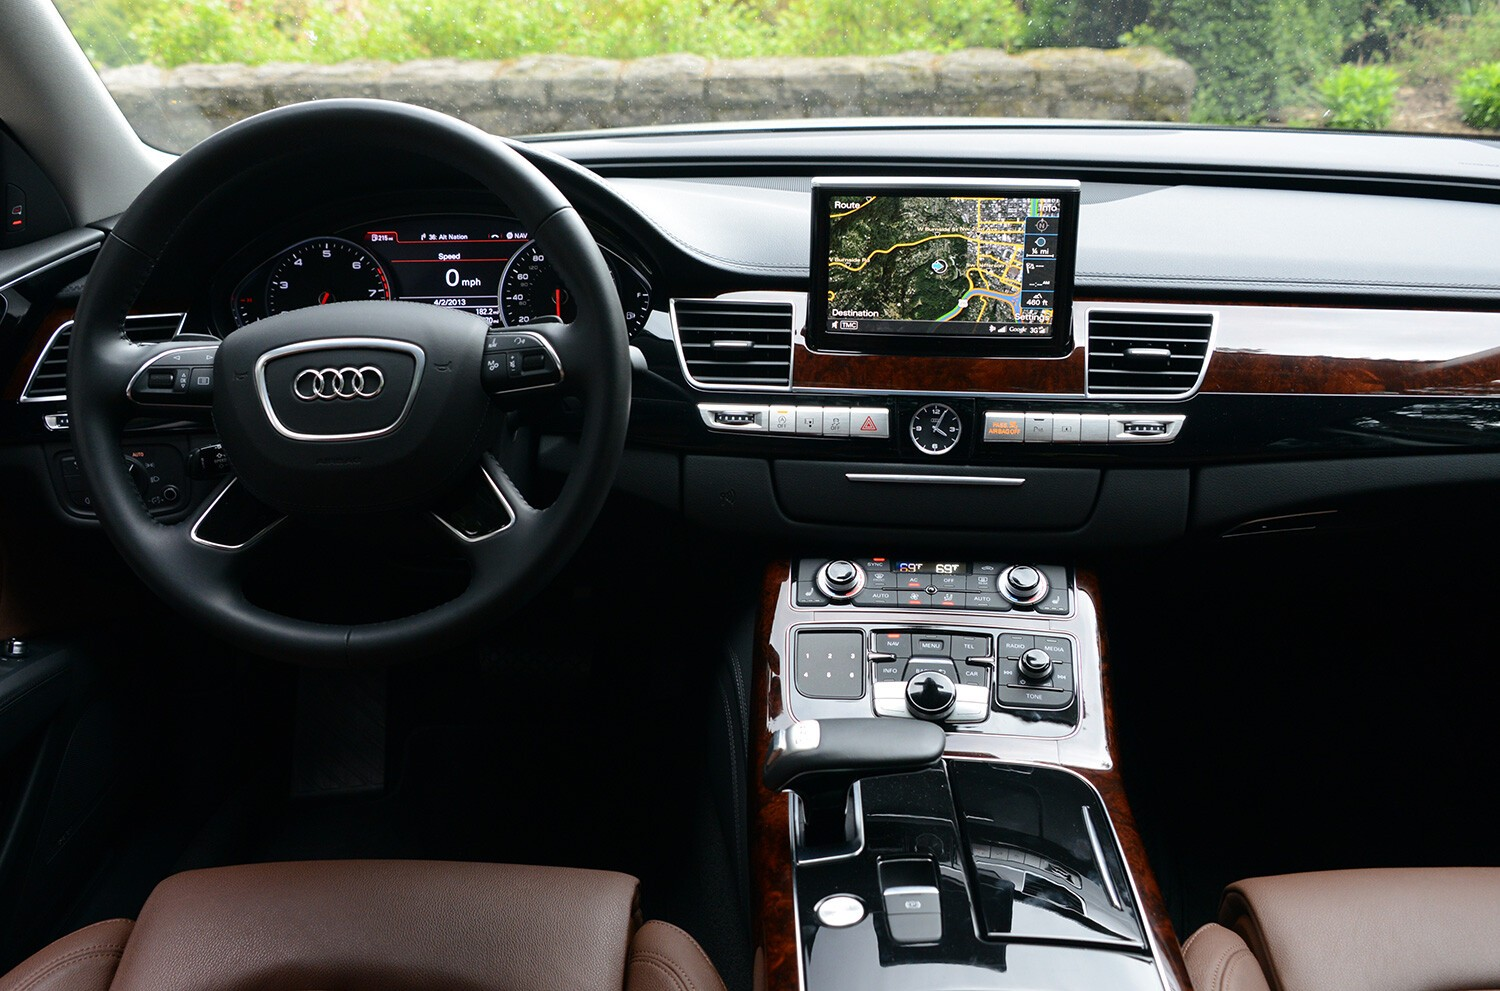 Blackberry Qnx Versus Ios And Android In Automobiles Crackberry